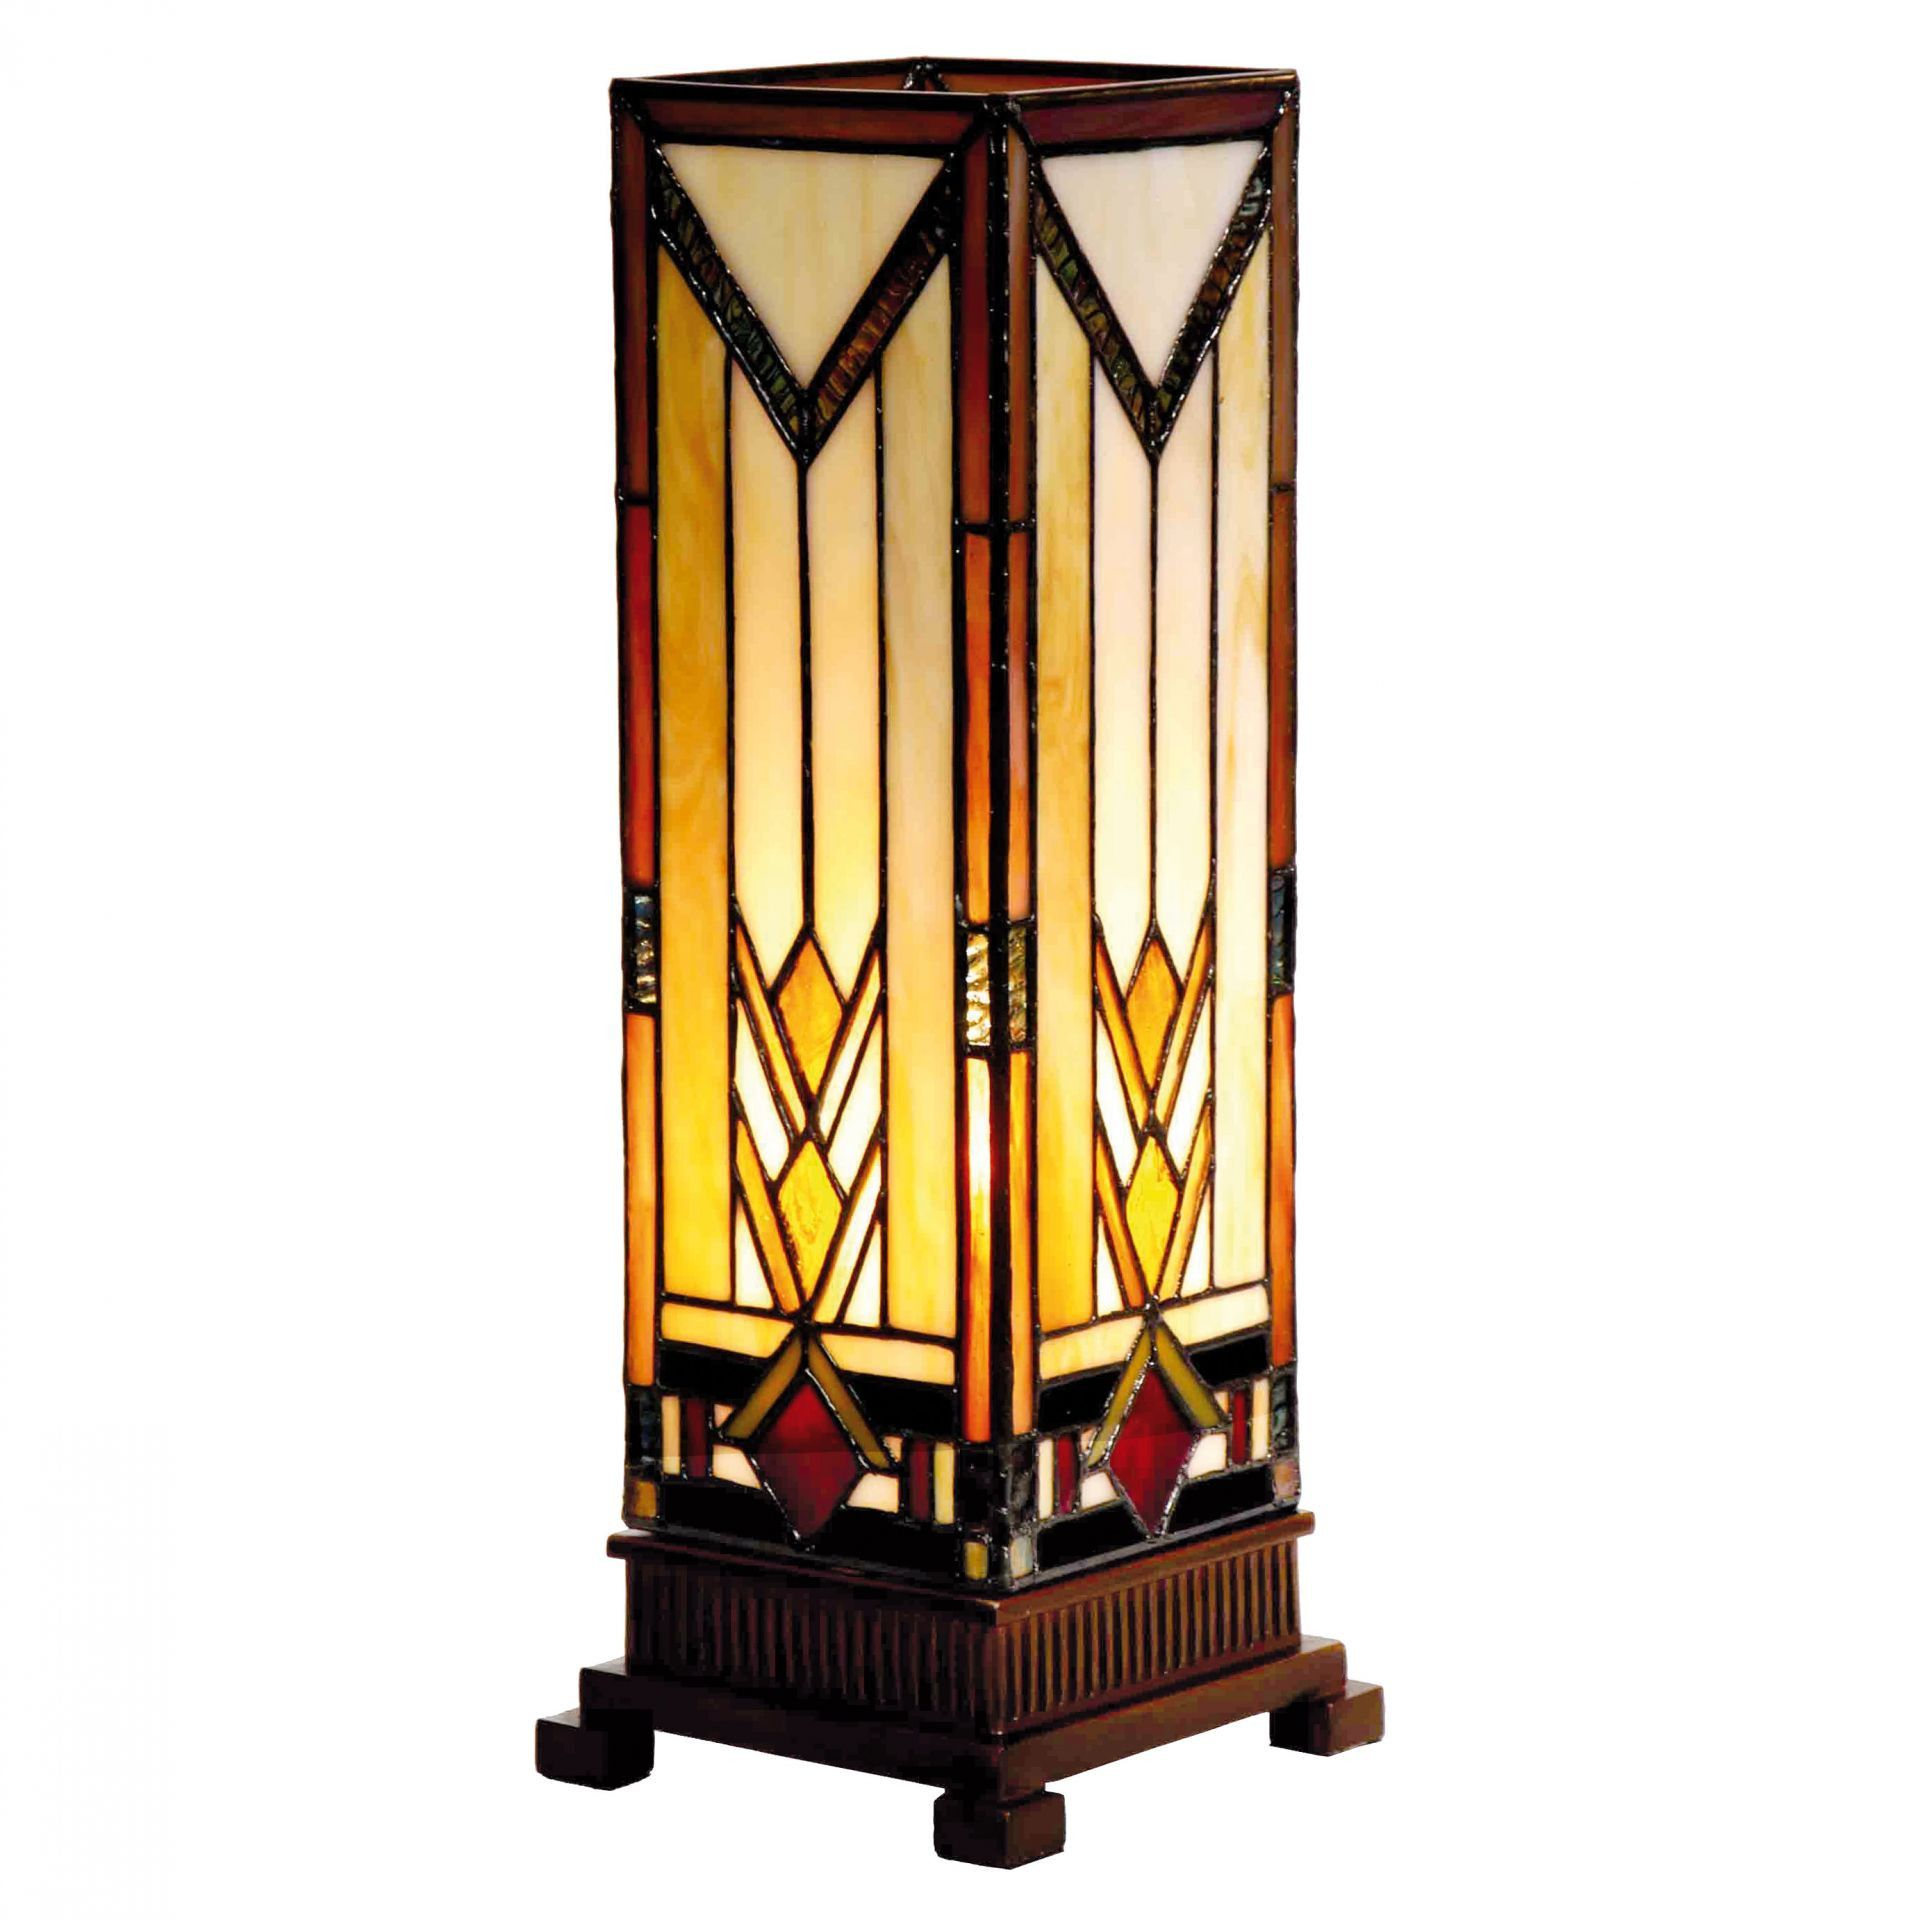 Prairie Medium Tiffany Square Table Lamp By Tiffany Lighting Direct Discover Our Range Special Offers Of Tiffany L Square Table Lamp Stained Glass Lamps Lamp